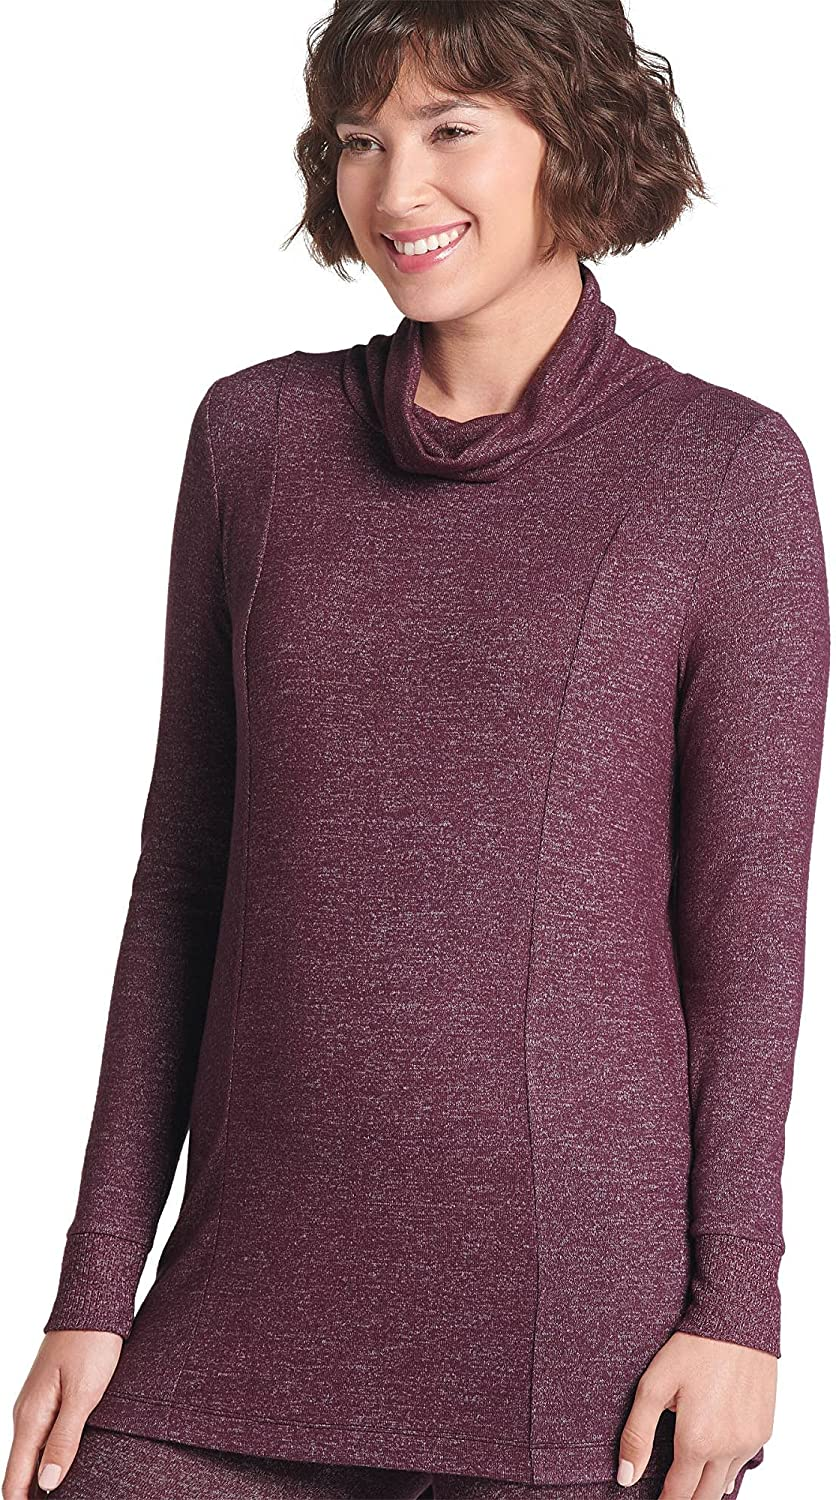 Jockey Women's Activewear ! Super beauty product restock quality top! Ribbed Cowl Wholesale Tunic Neck Sleeve